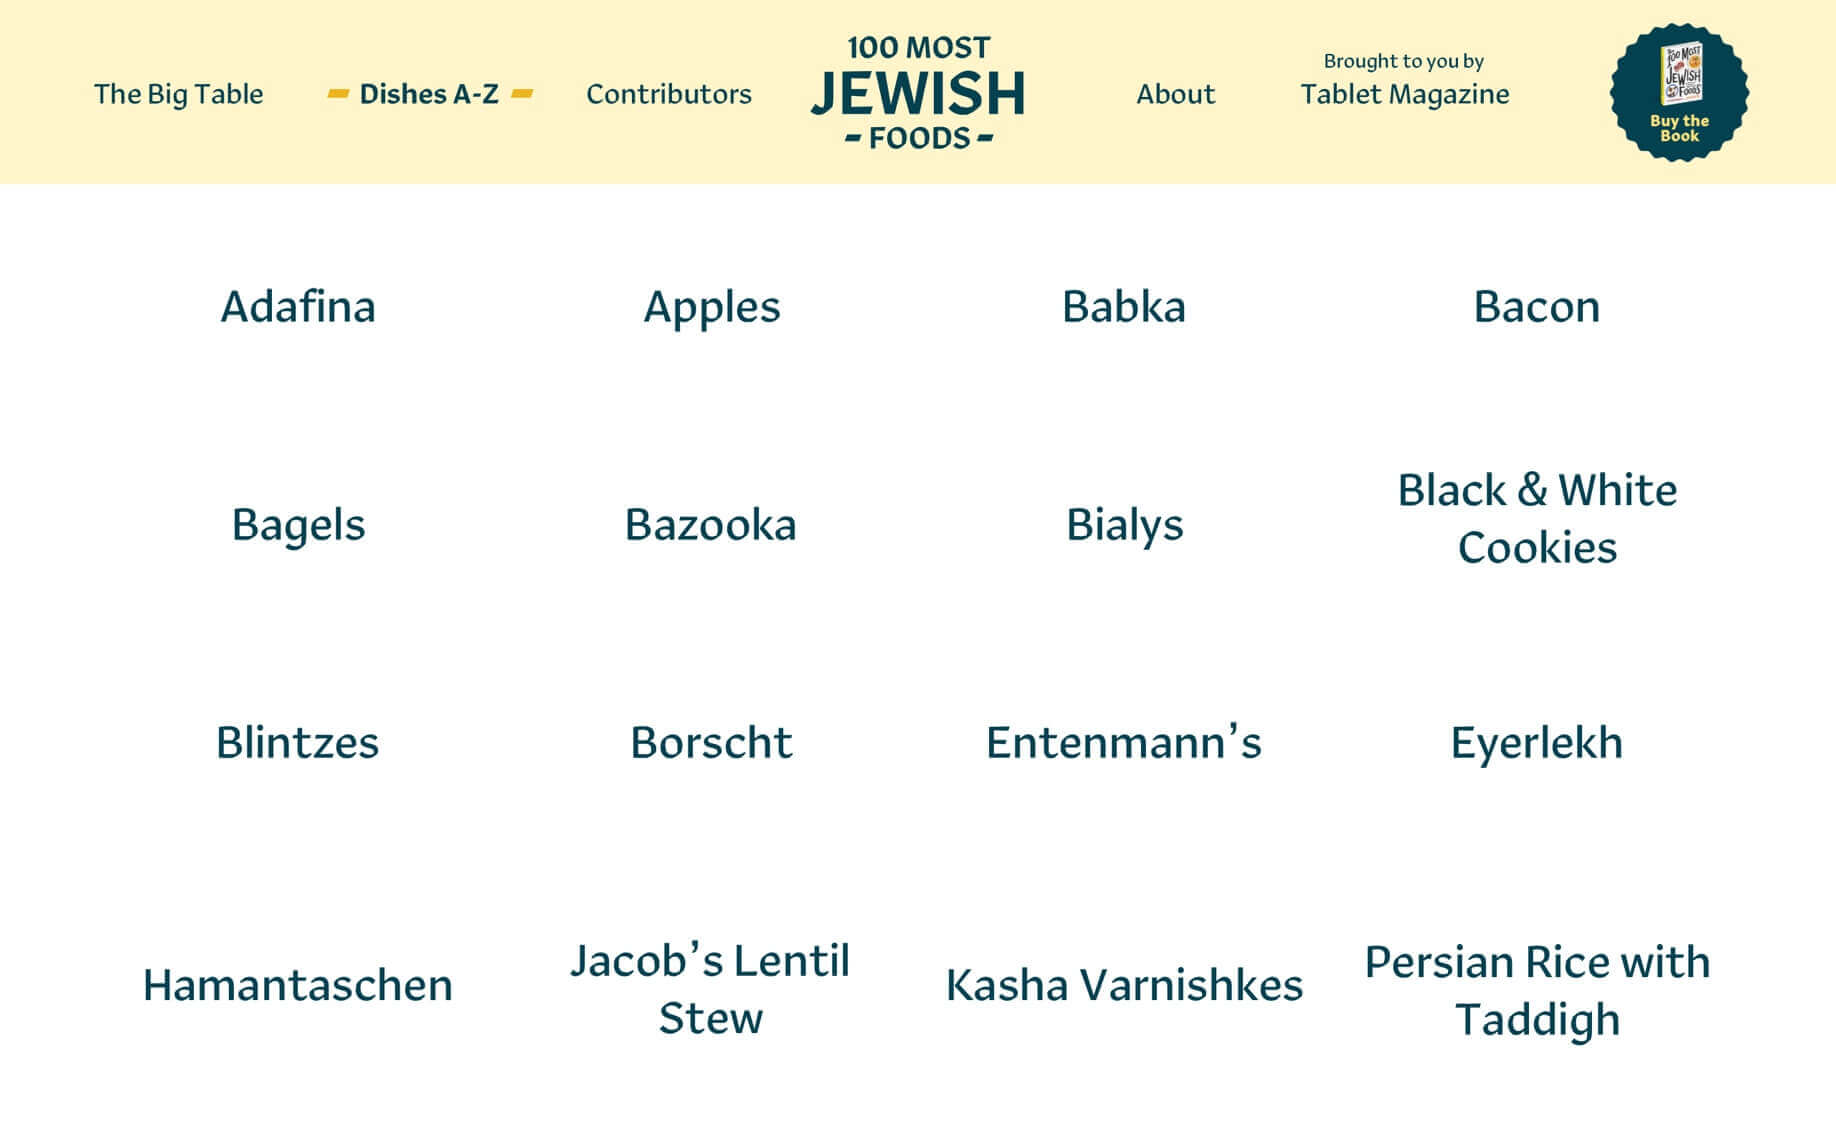 100 Most Jewish Foods Dishes